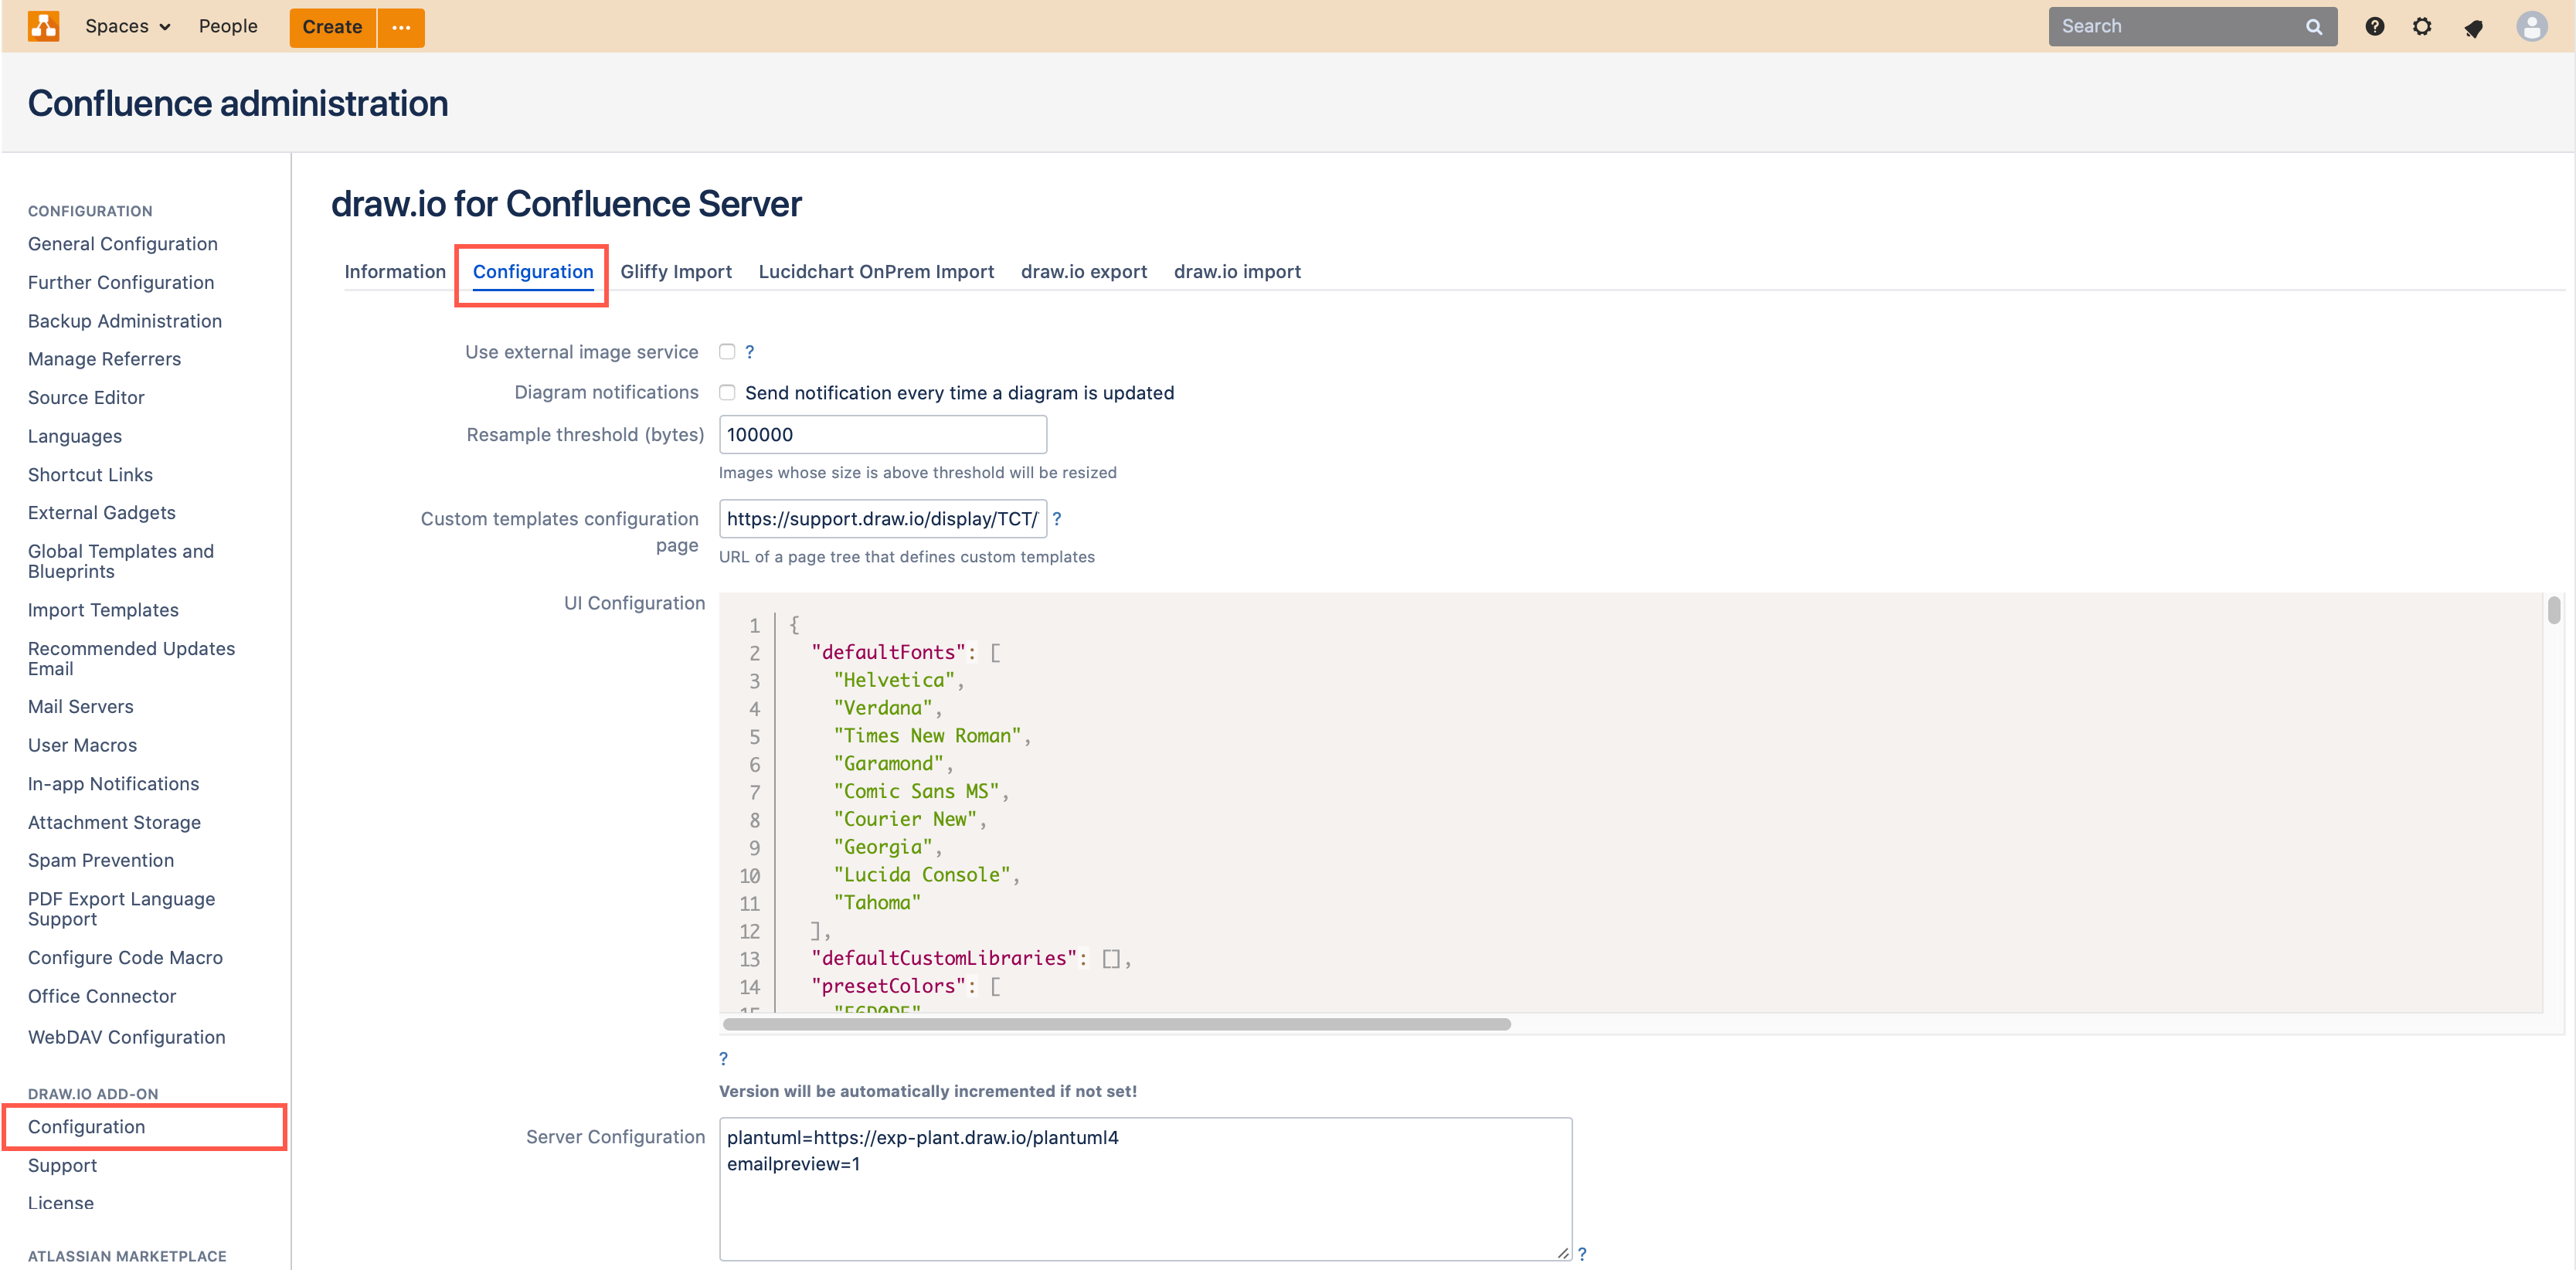 draw.io Configuration in Confluence Server